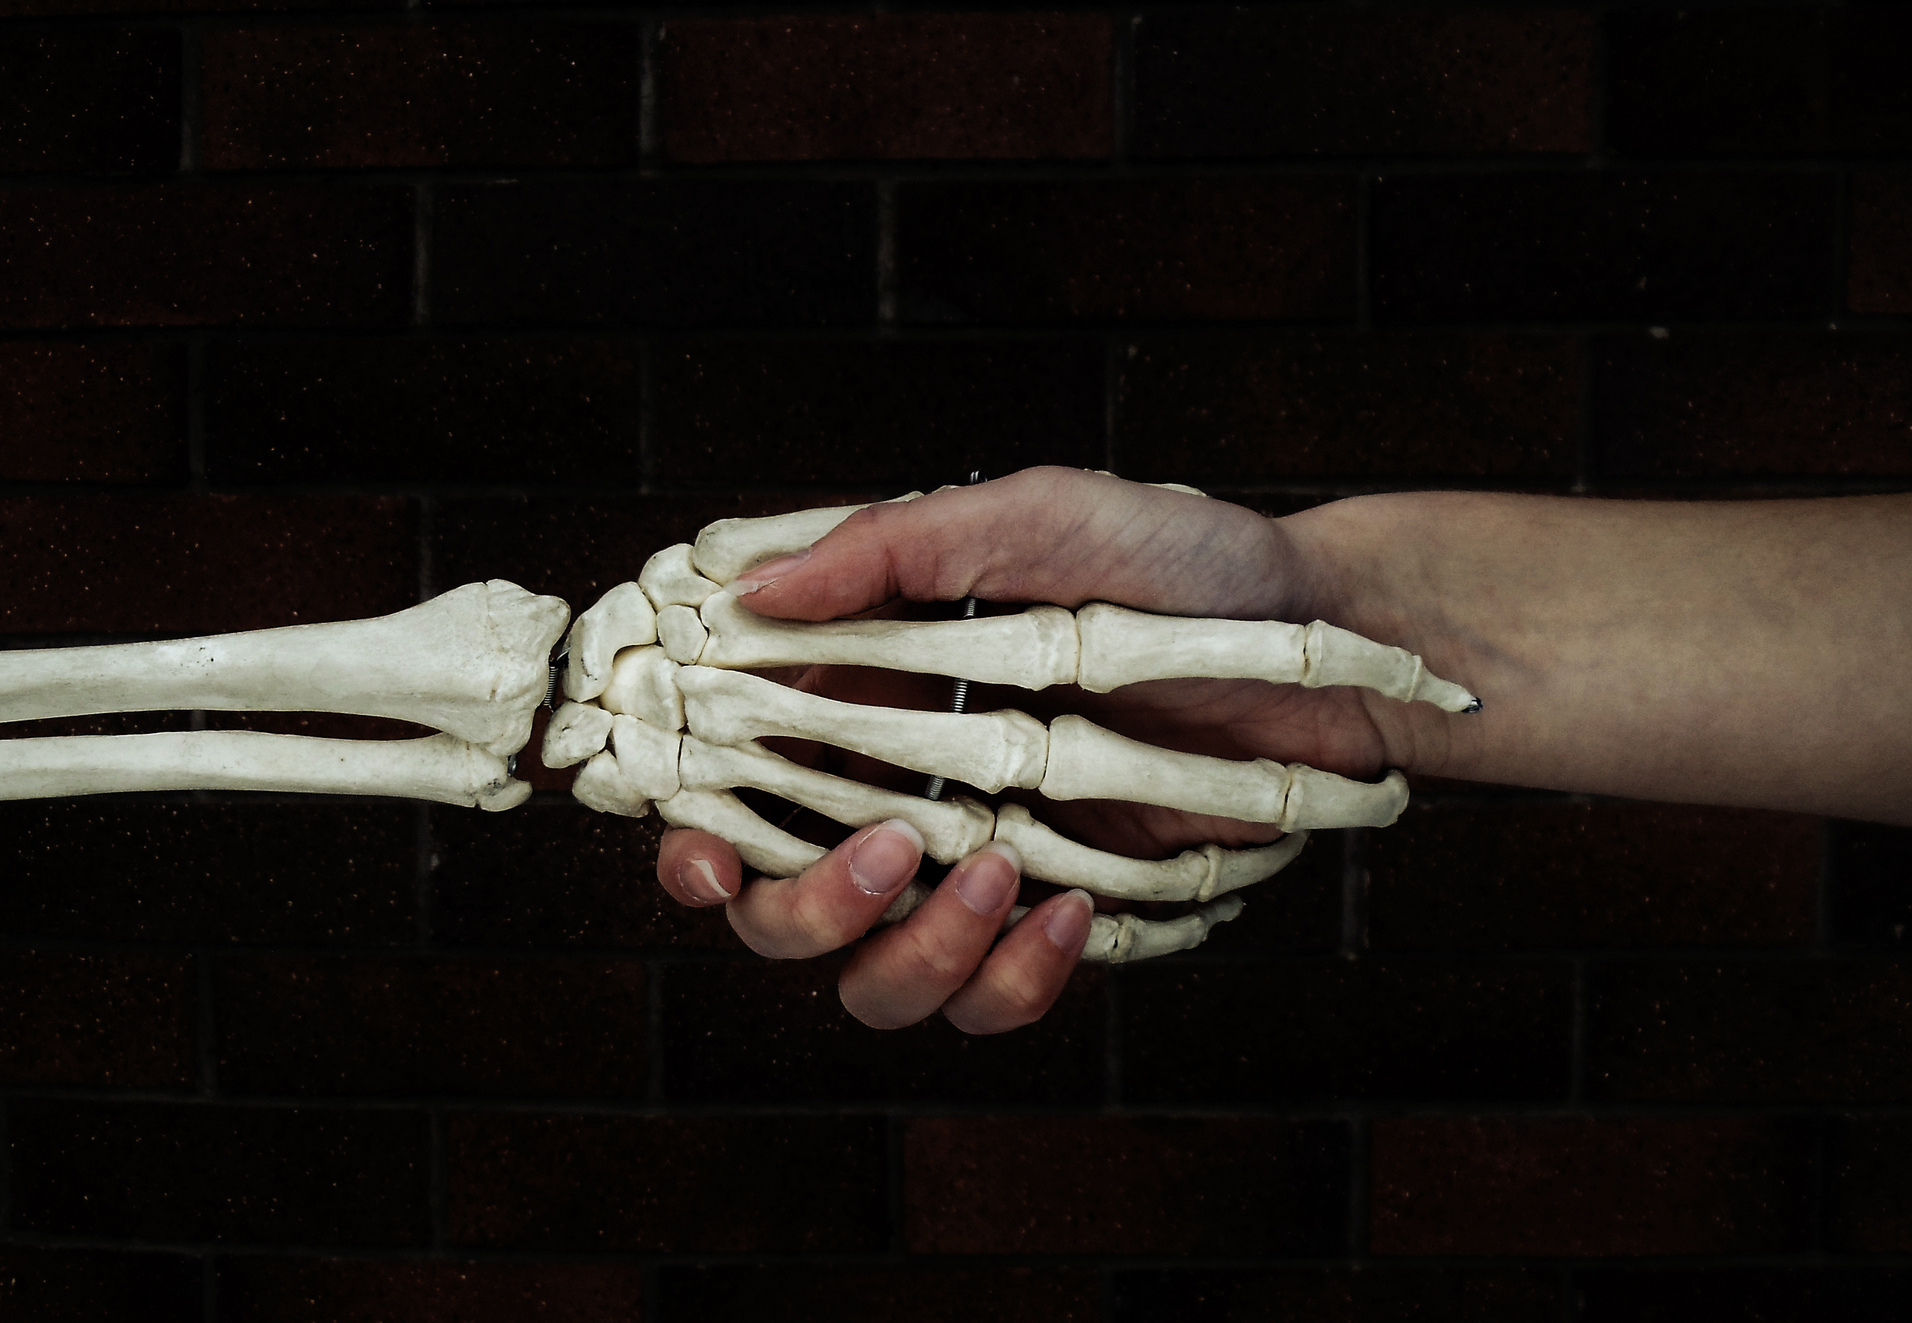 Surgeons use a home-use 3D printer to help in bone fracture operations